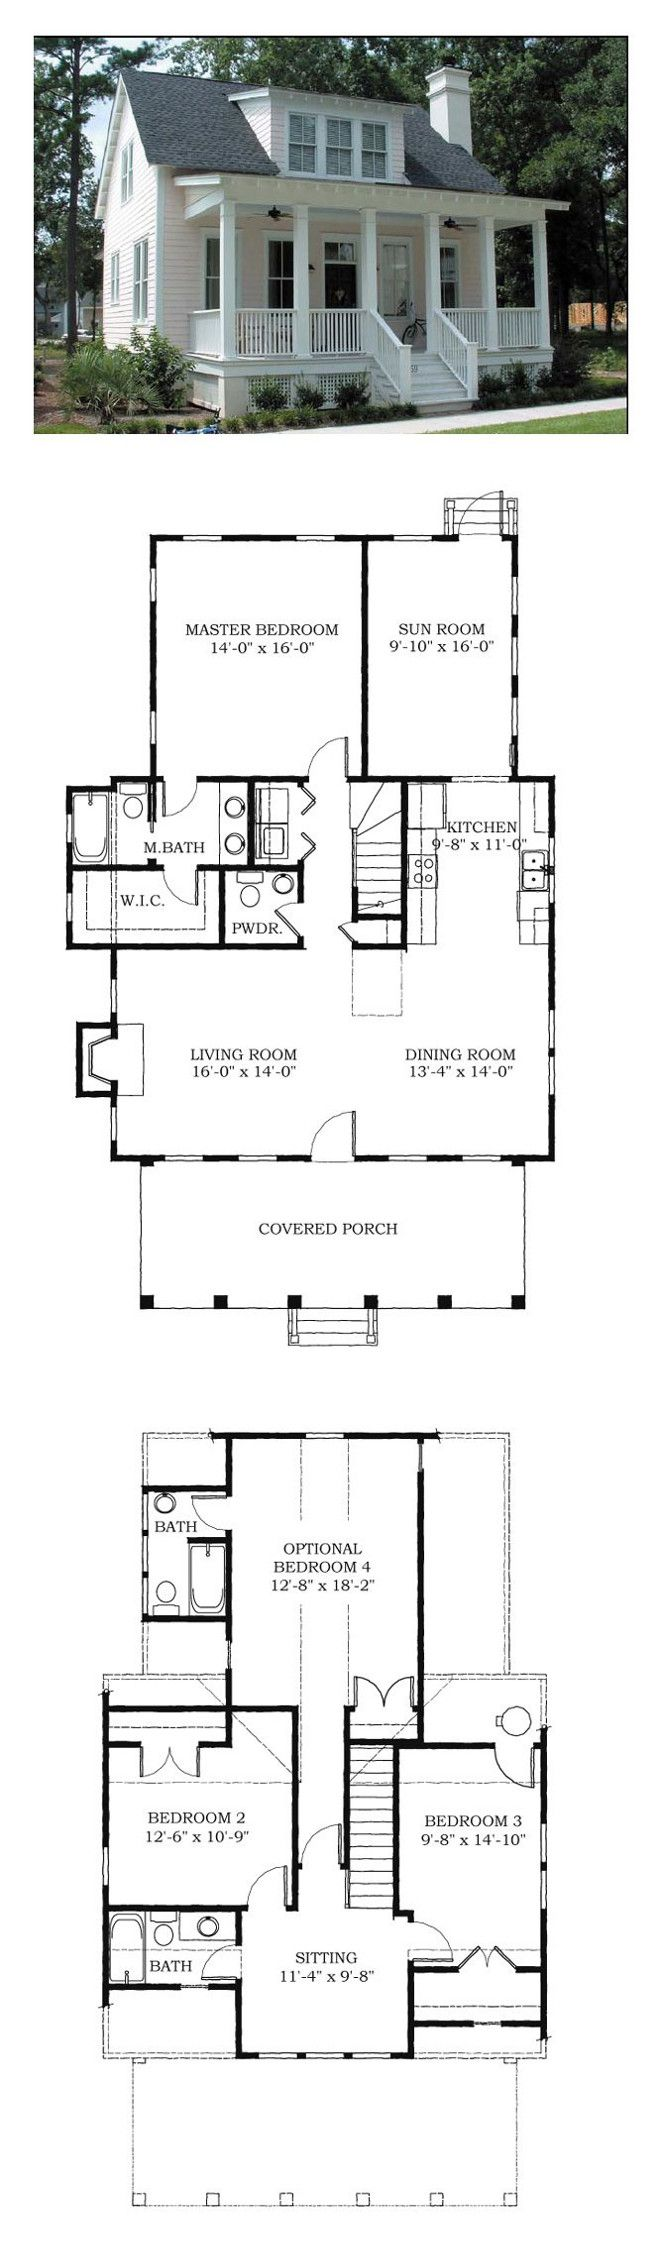 Cottage with 1783 sq 4 bedrooms and